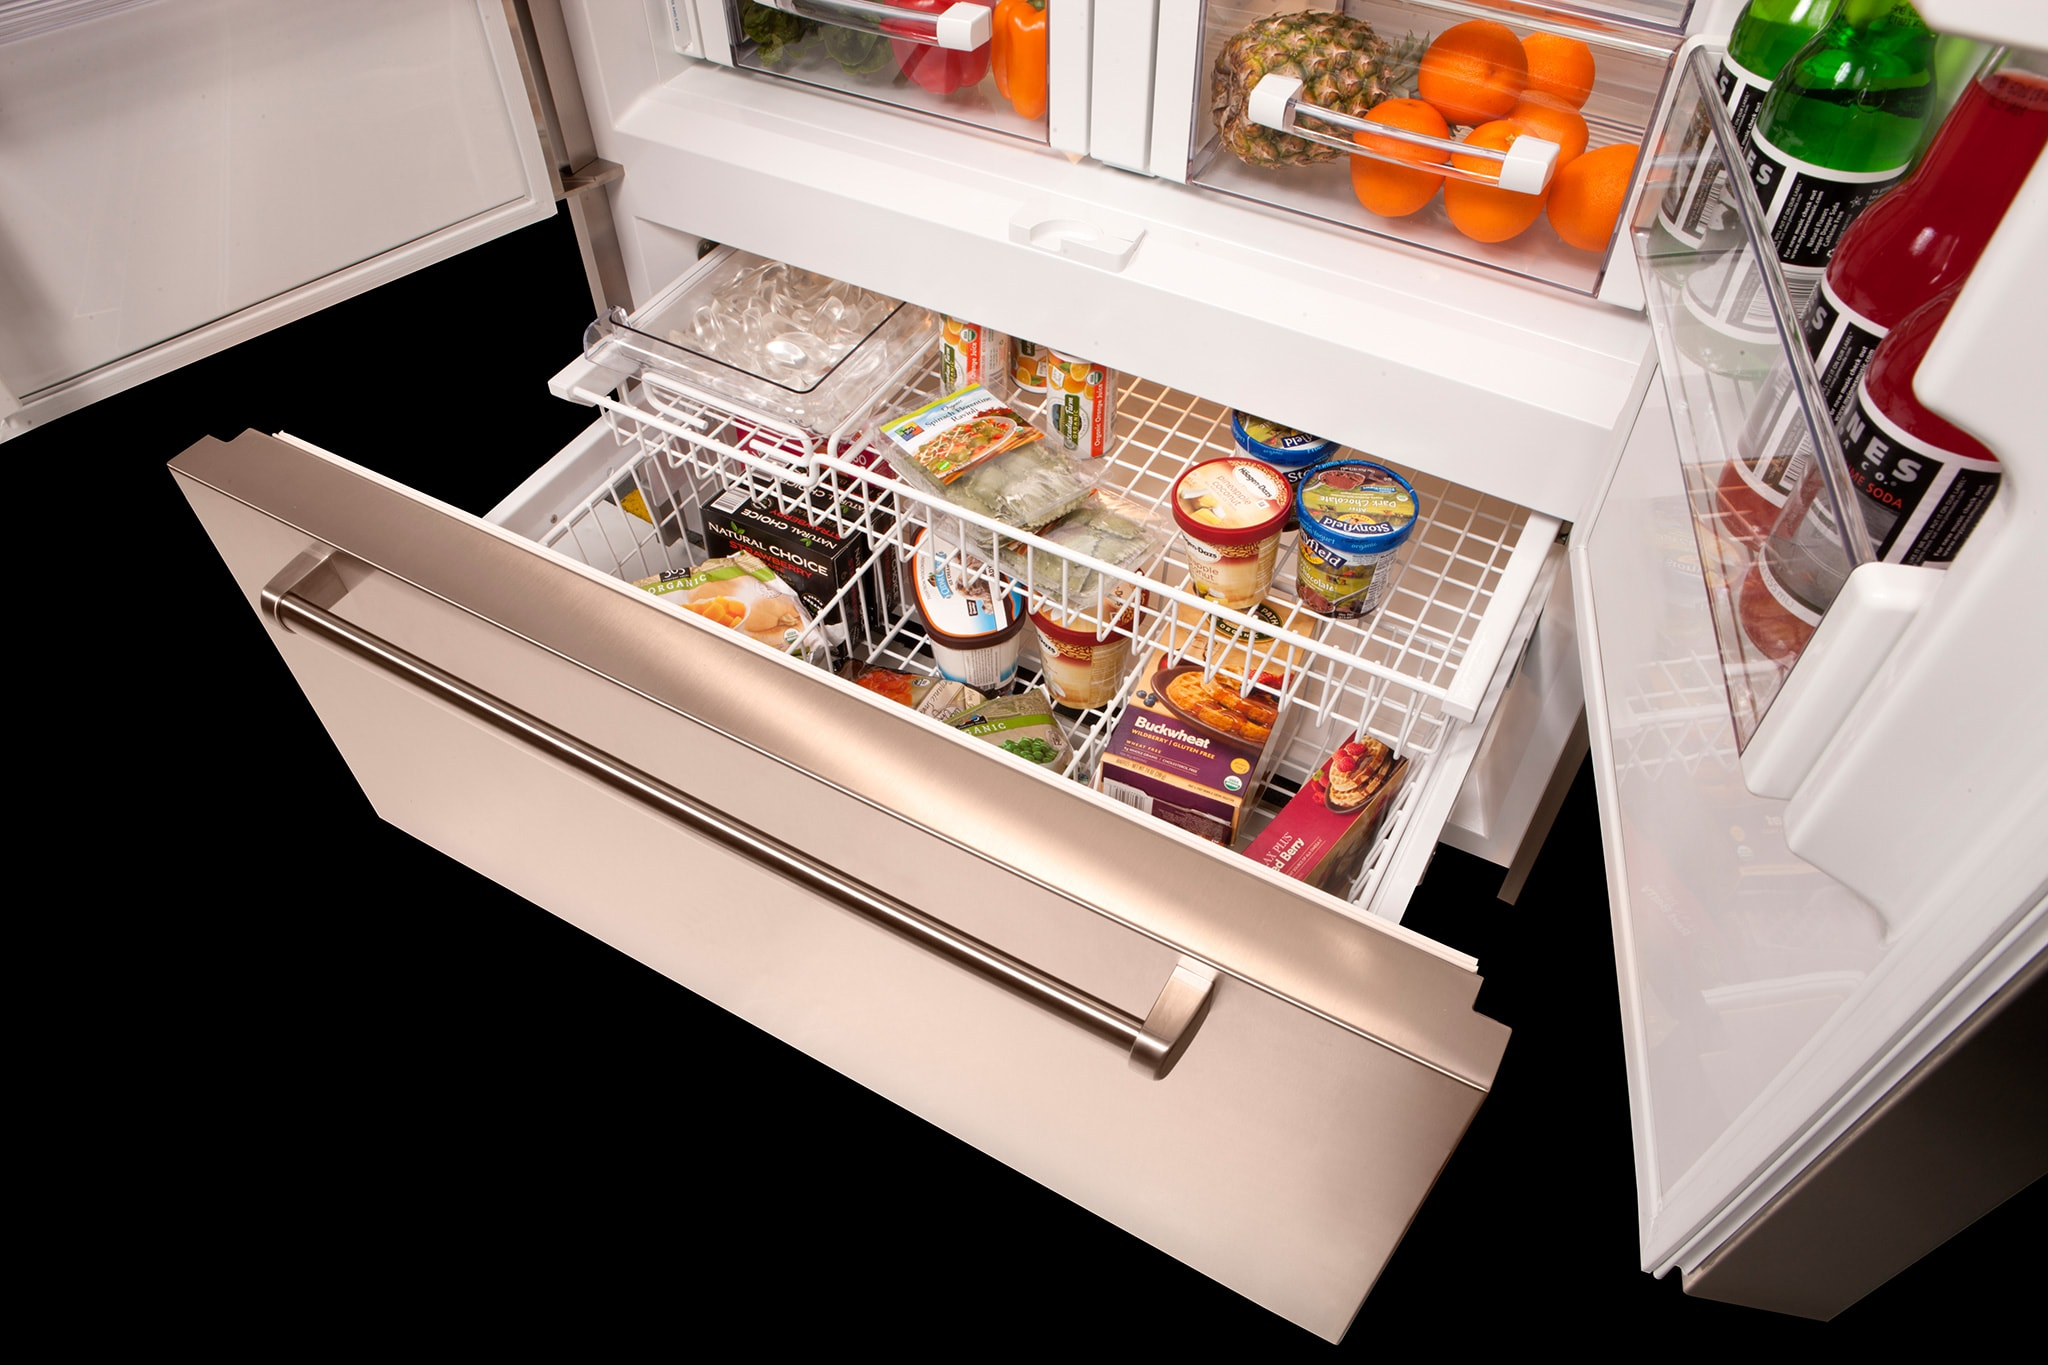 BI-42UFD_Freezer_Drawer_Close_Up